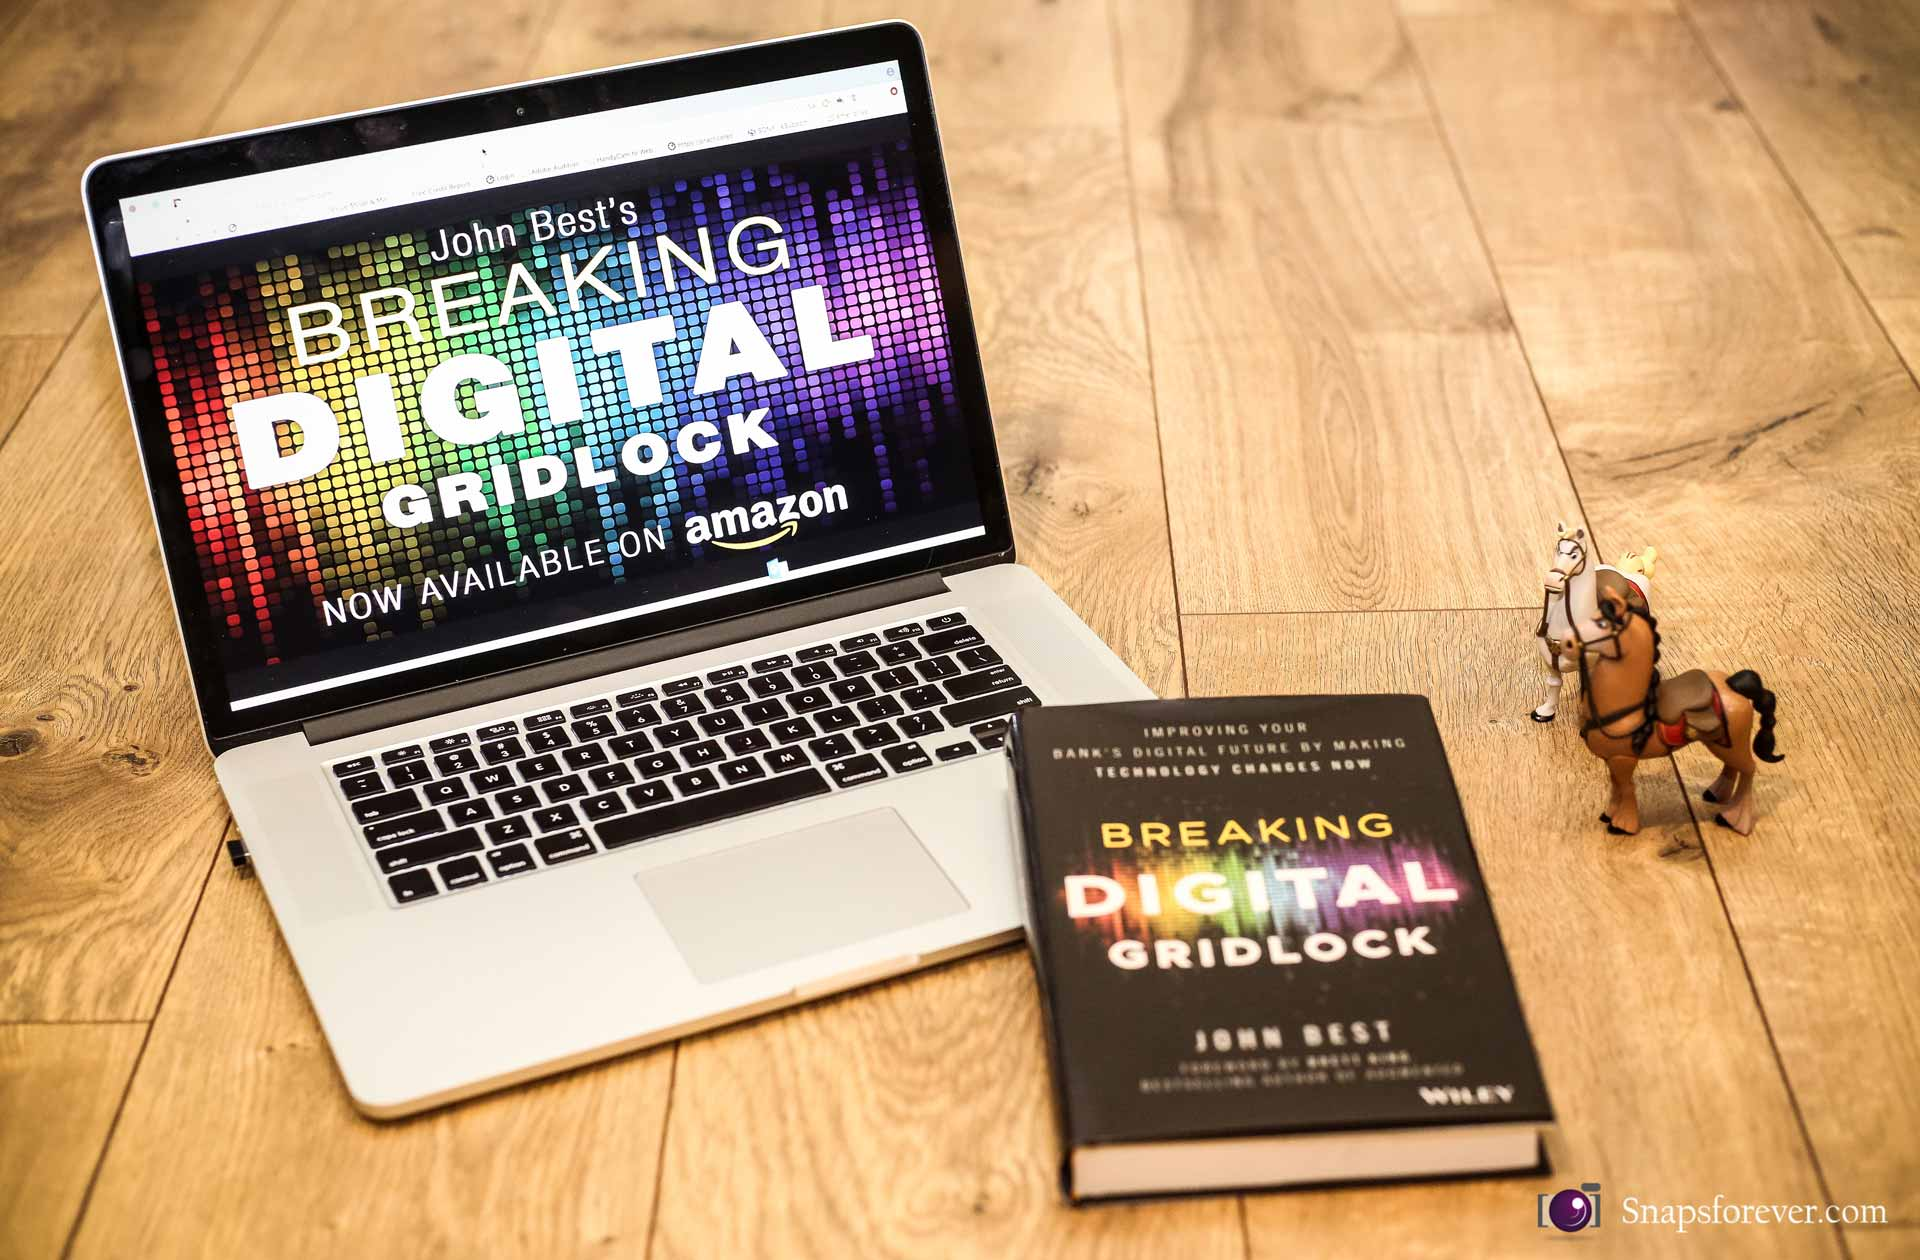 Book Review: Breaking Digital Gridlock